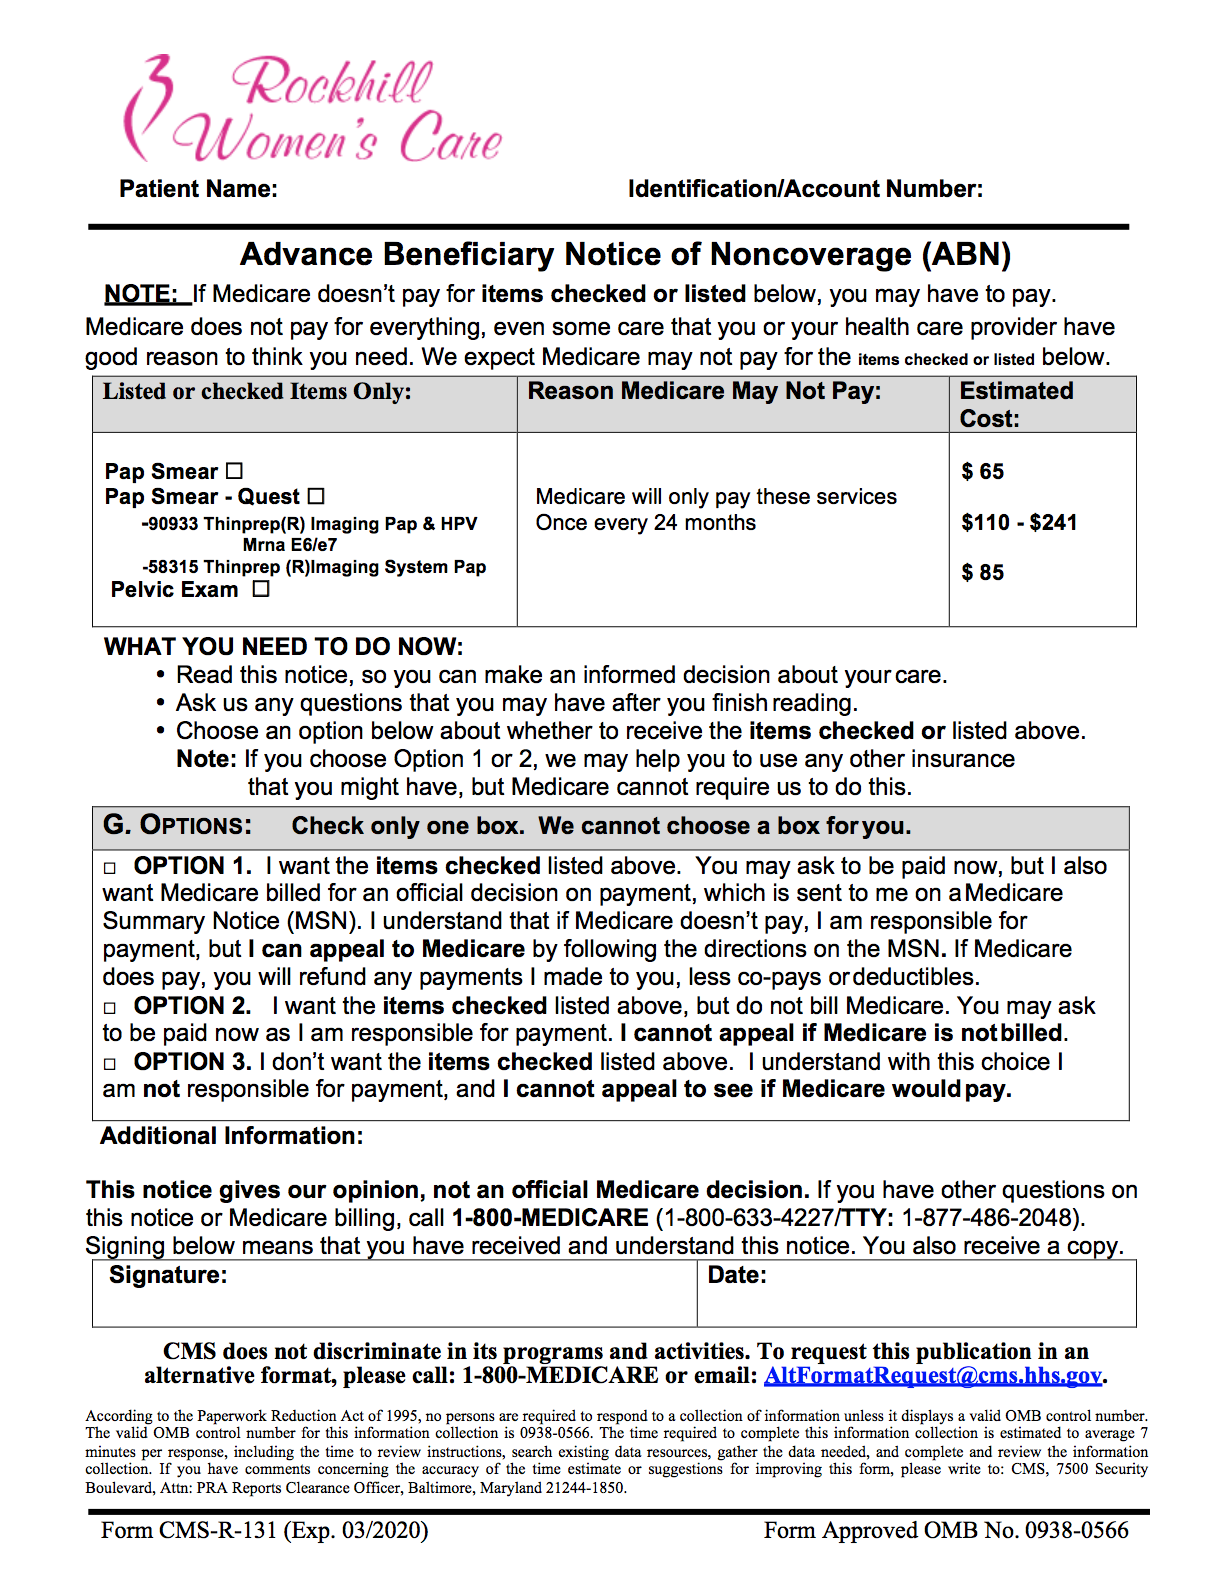 Medicare ABN